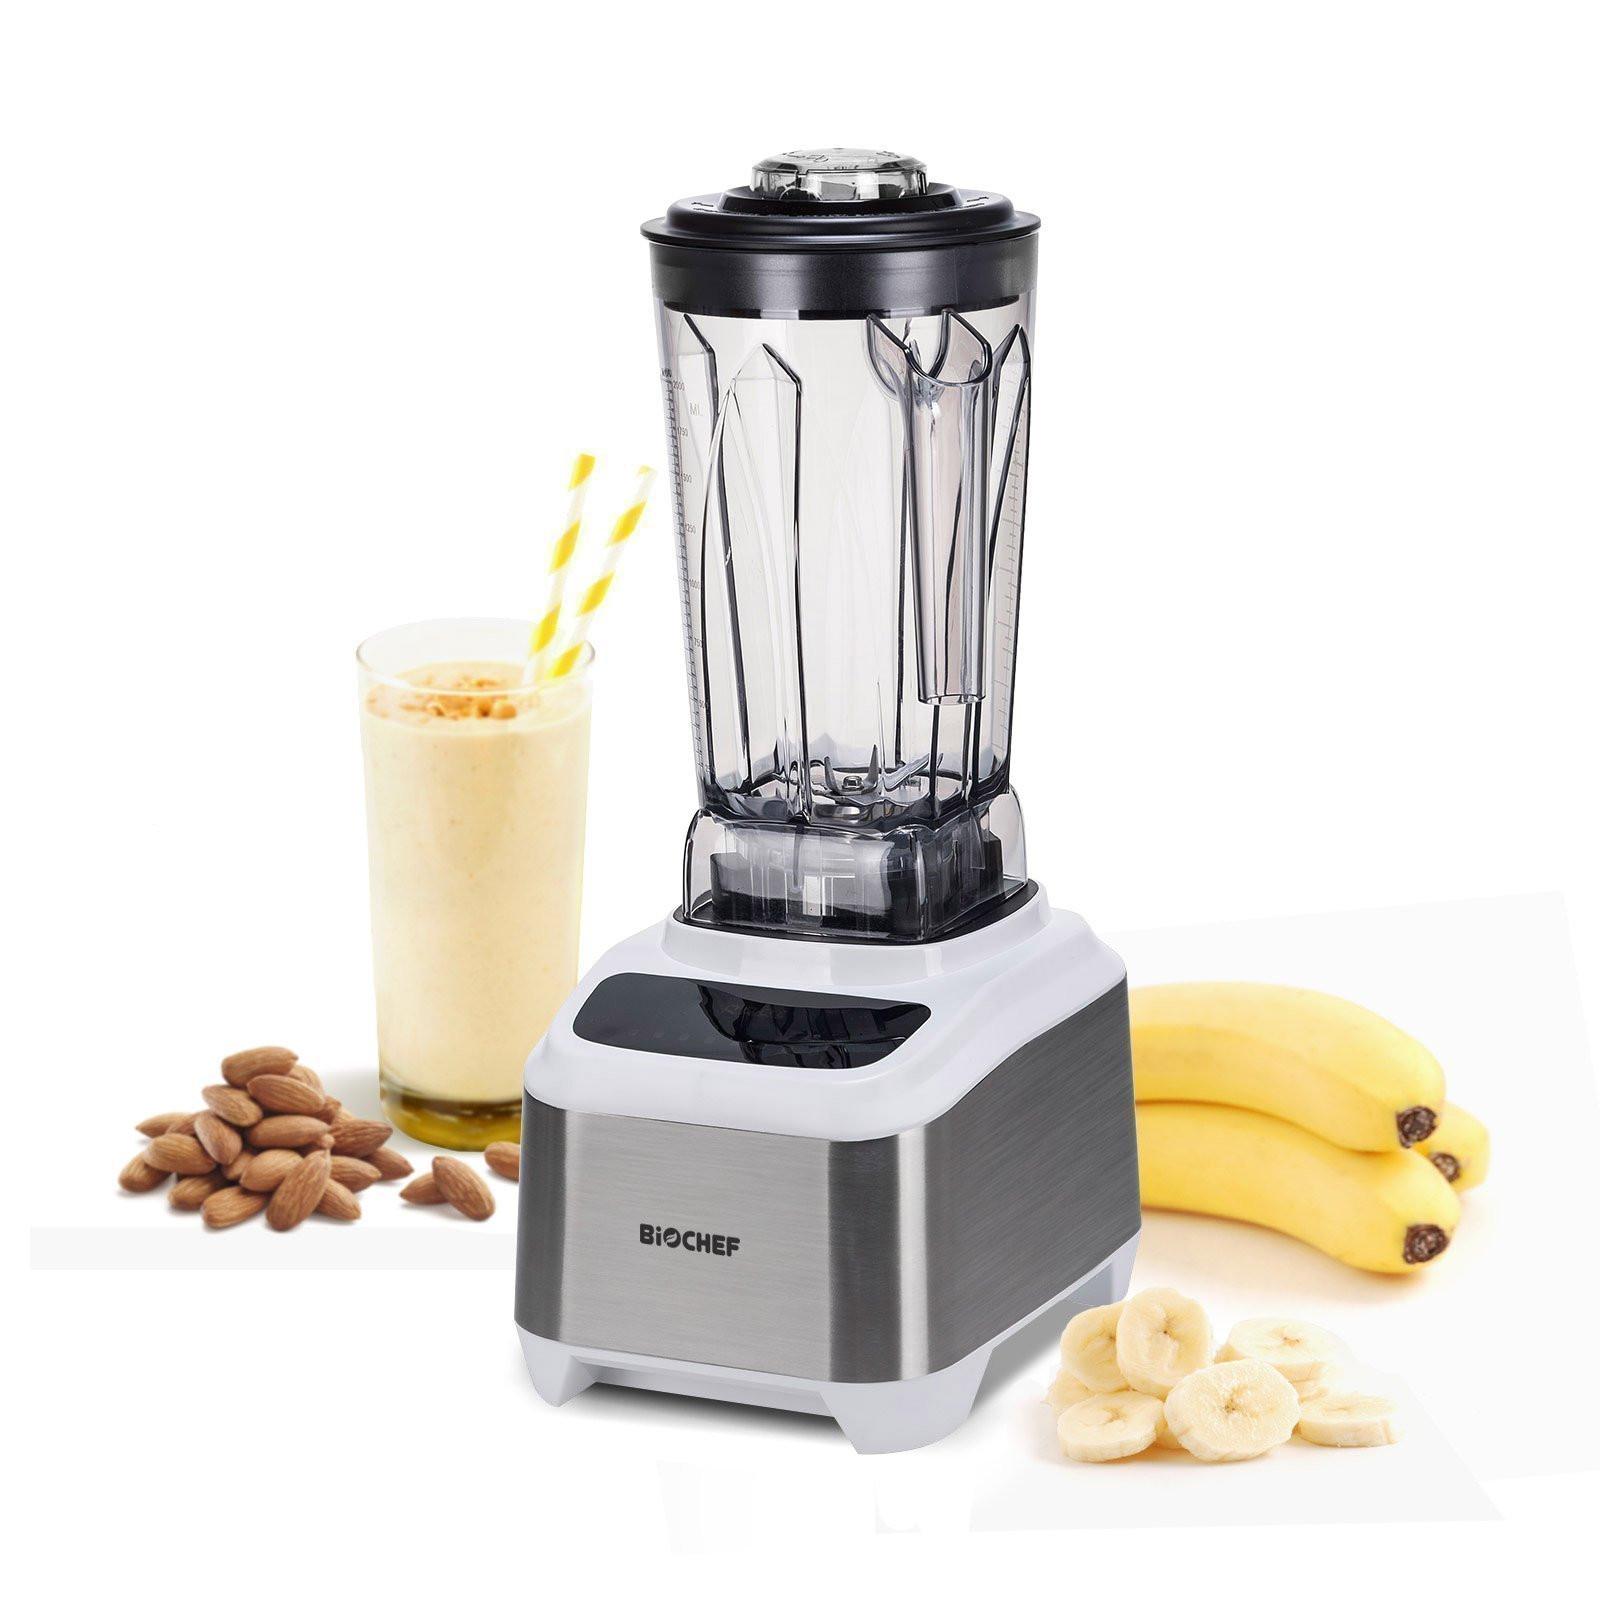 BioChef Atlas Power Blender White Sideways Fruit